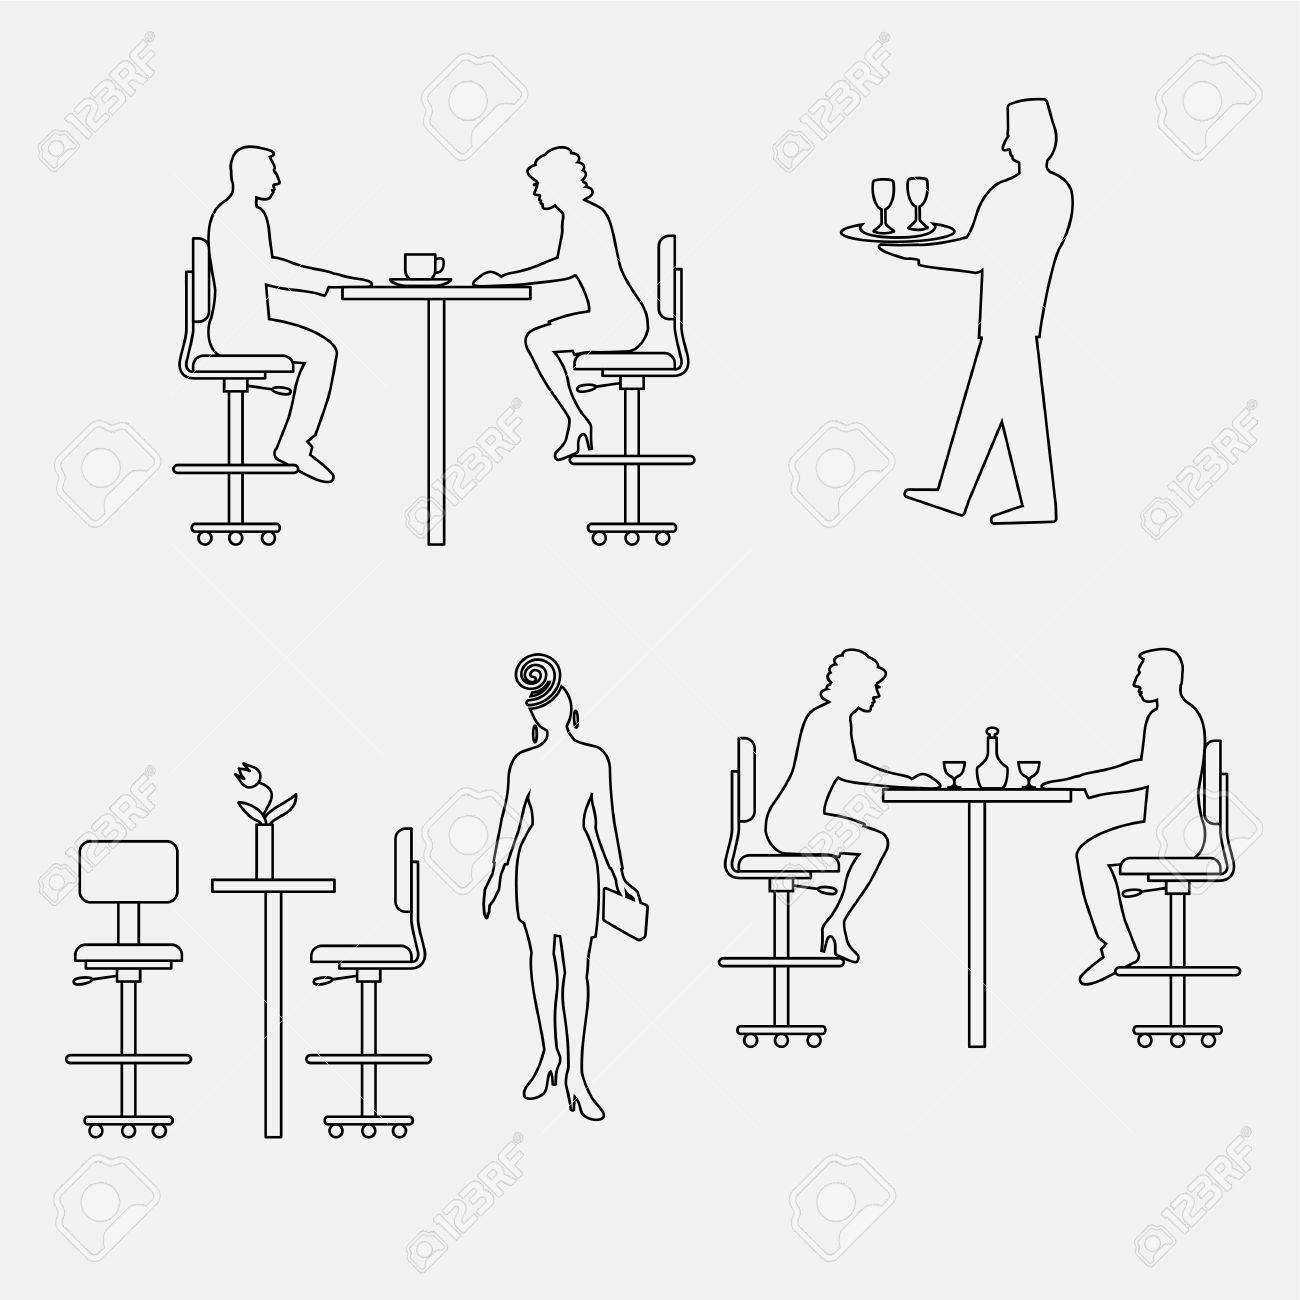 Architectural Set Of Furniture With People Sitting Man Woman  # Schema De Meuble Dimension